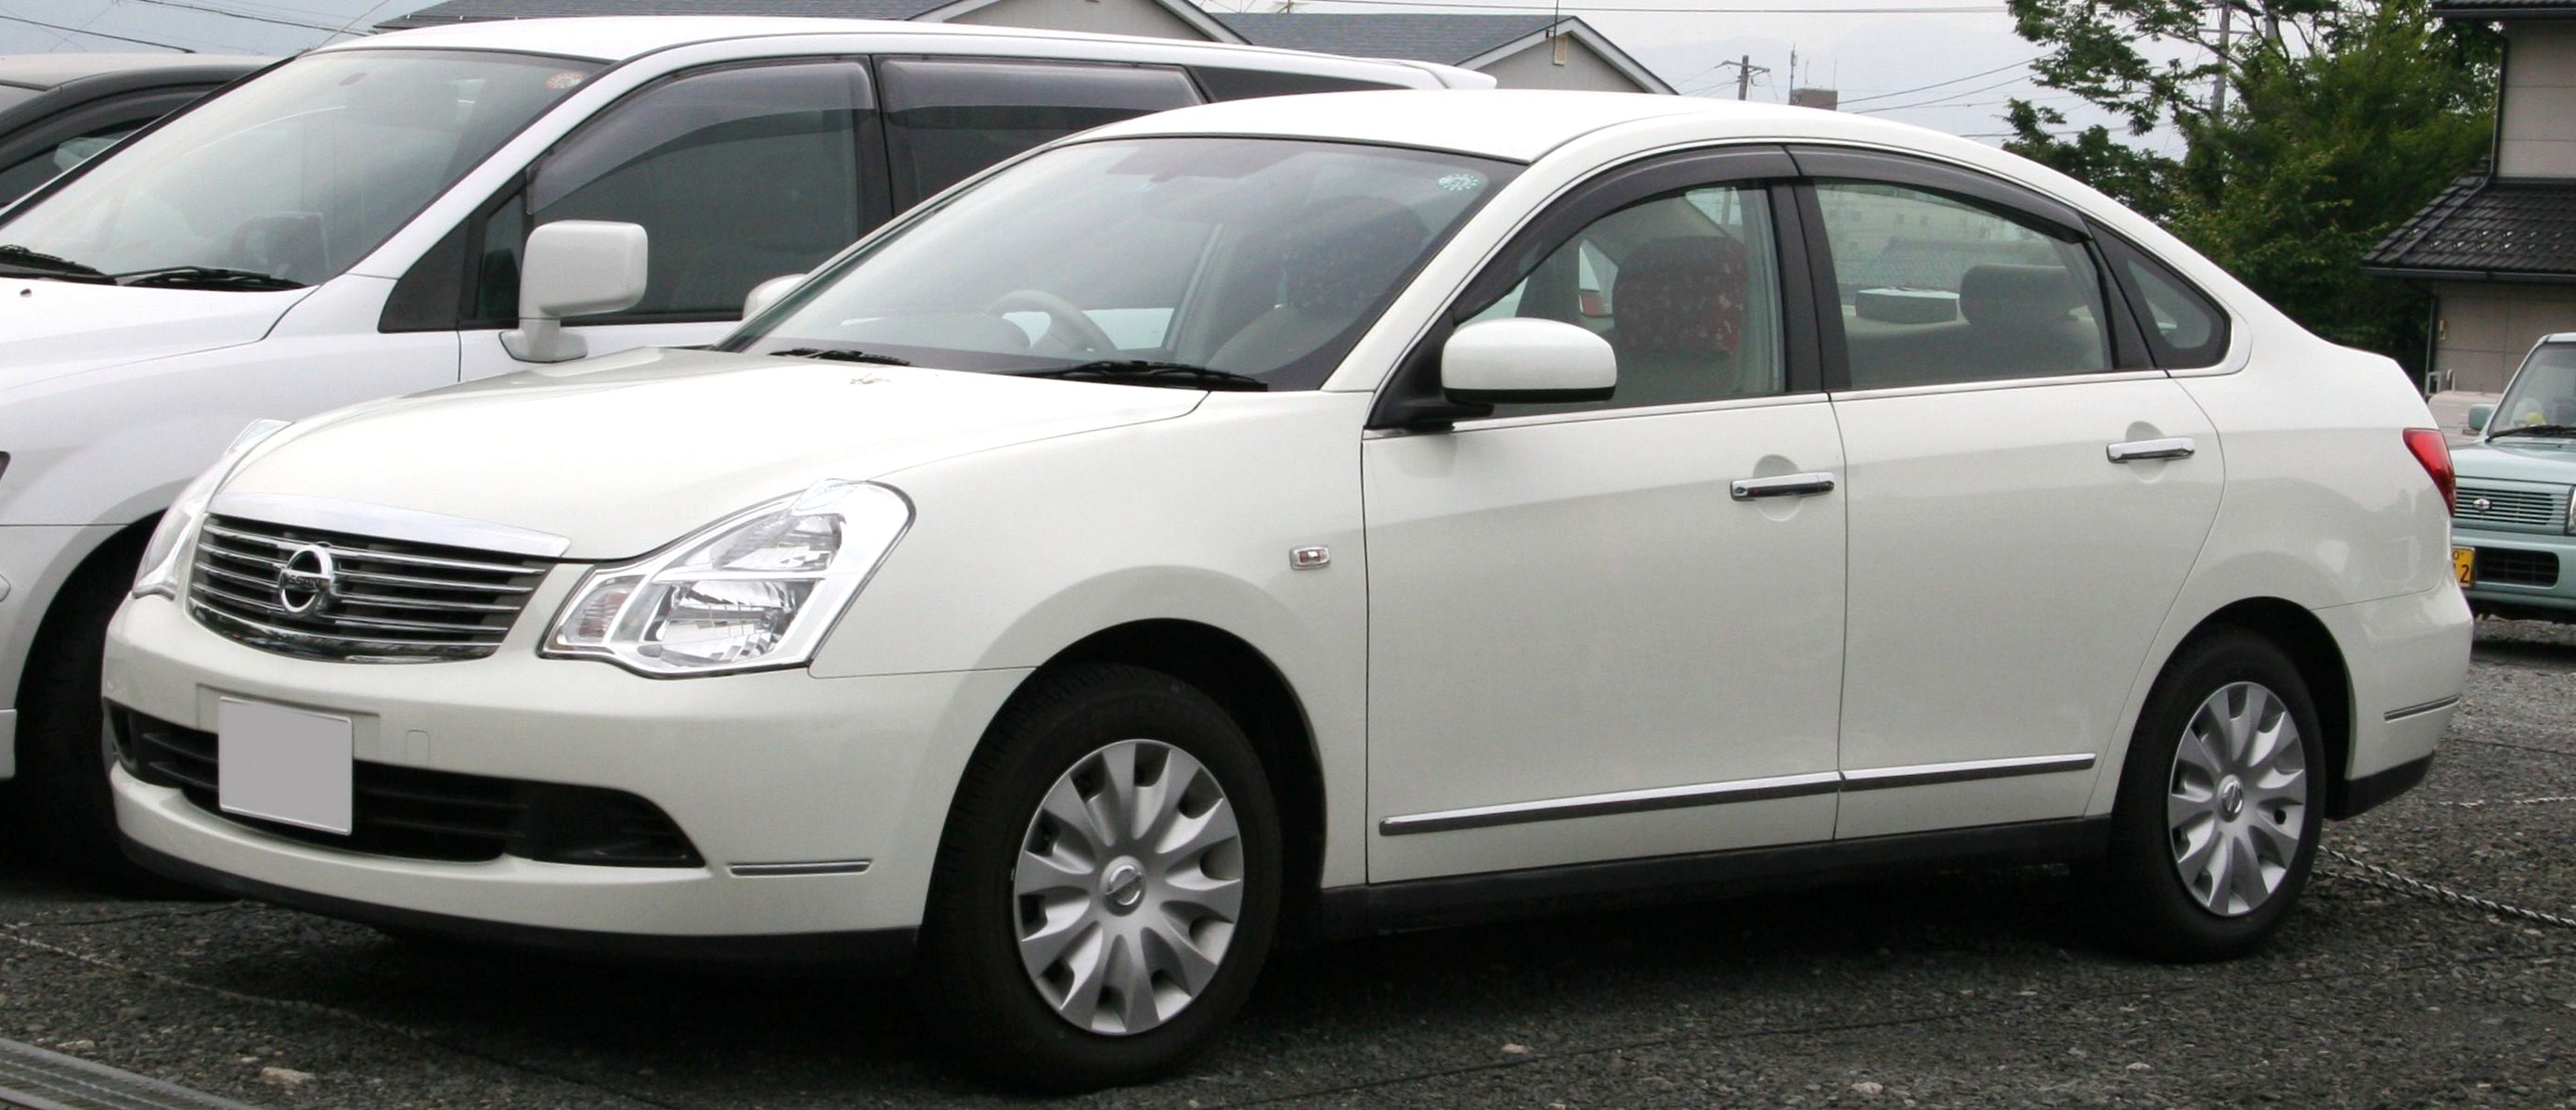 Nissan Bluebird 2009 photo - 3